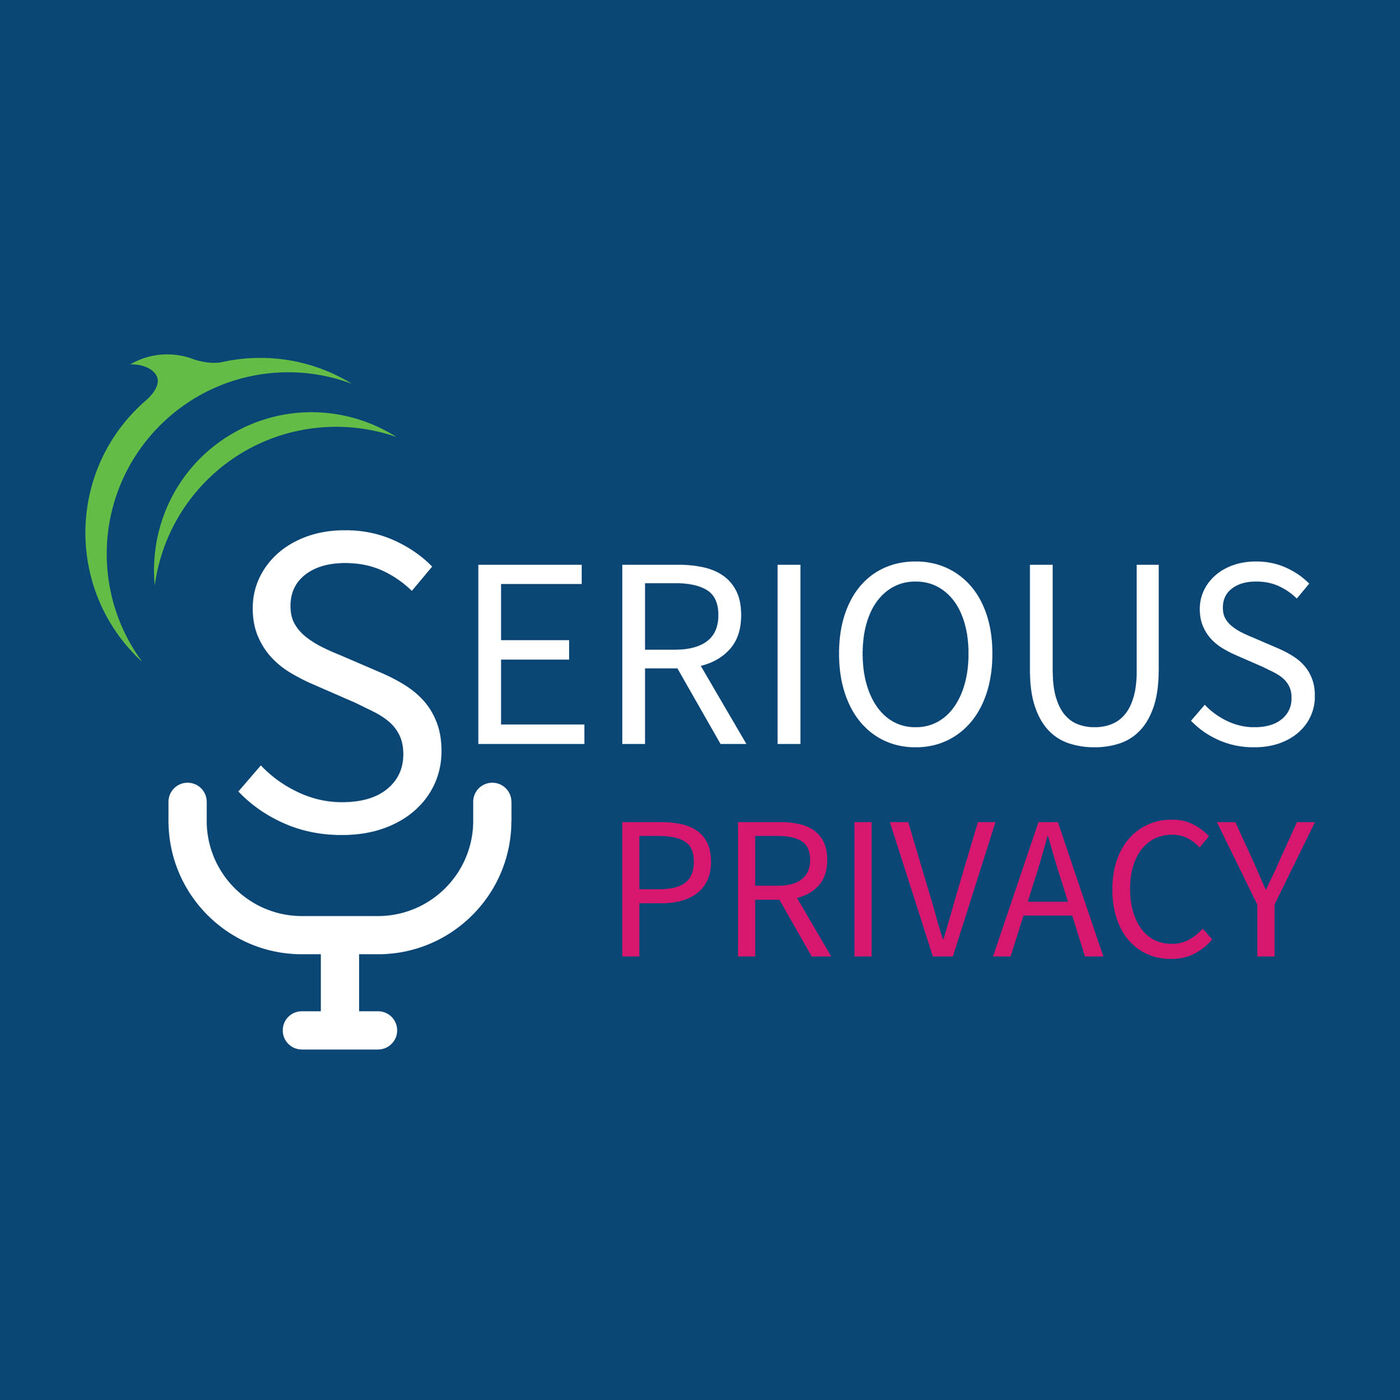 The Present State of Privacy: A Gift that Keeps Giving (with Chris Foreman of Merck)